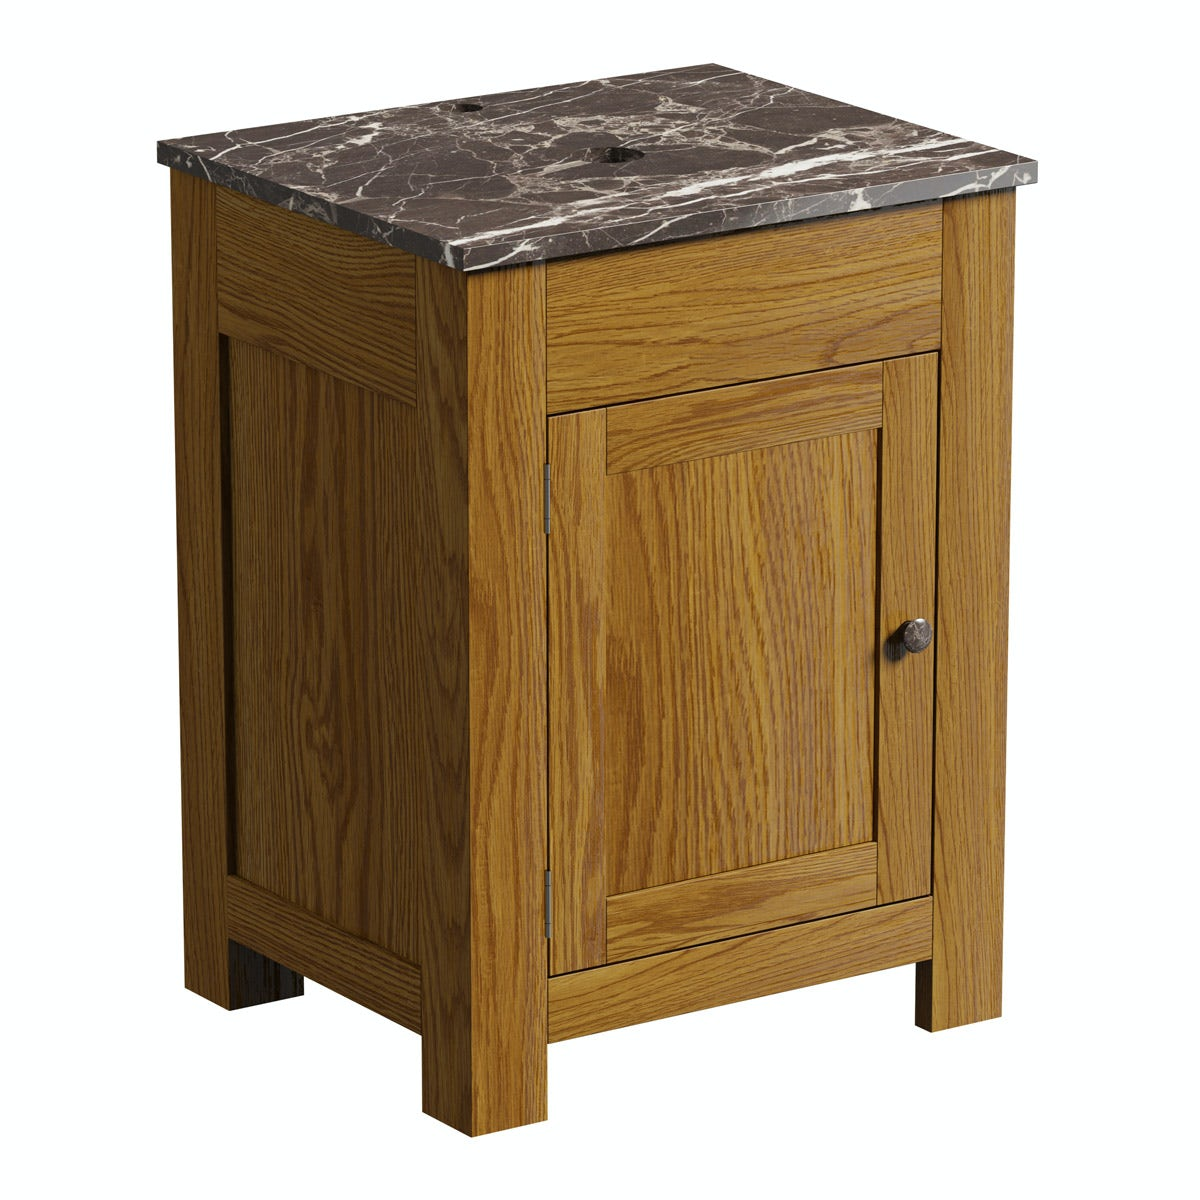 The Bath Co. Chester oak washstand with brown marble top 600mm